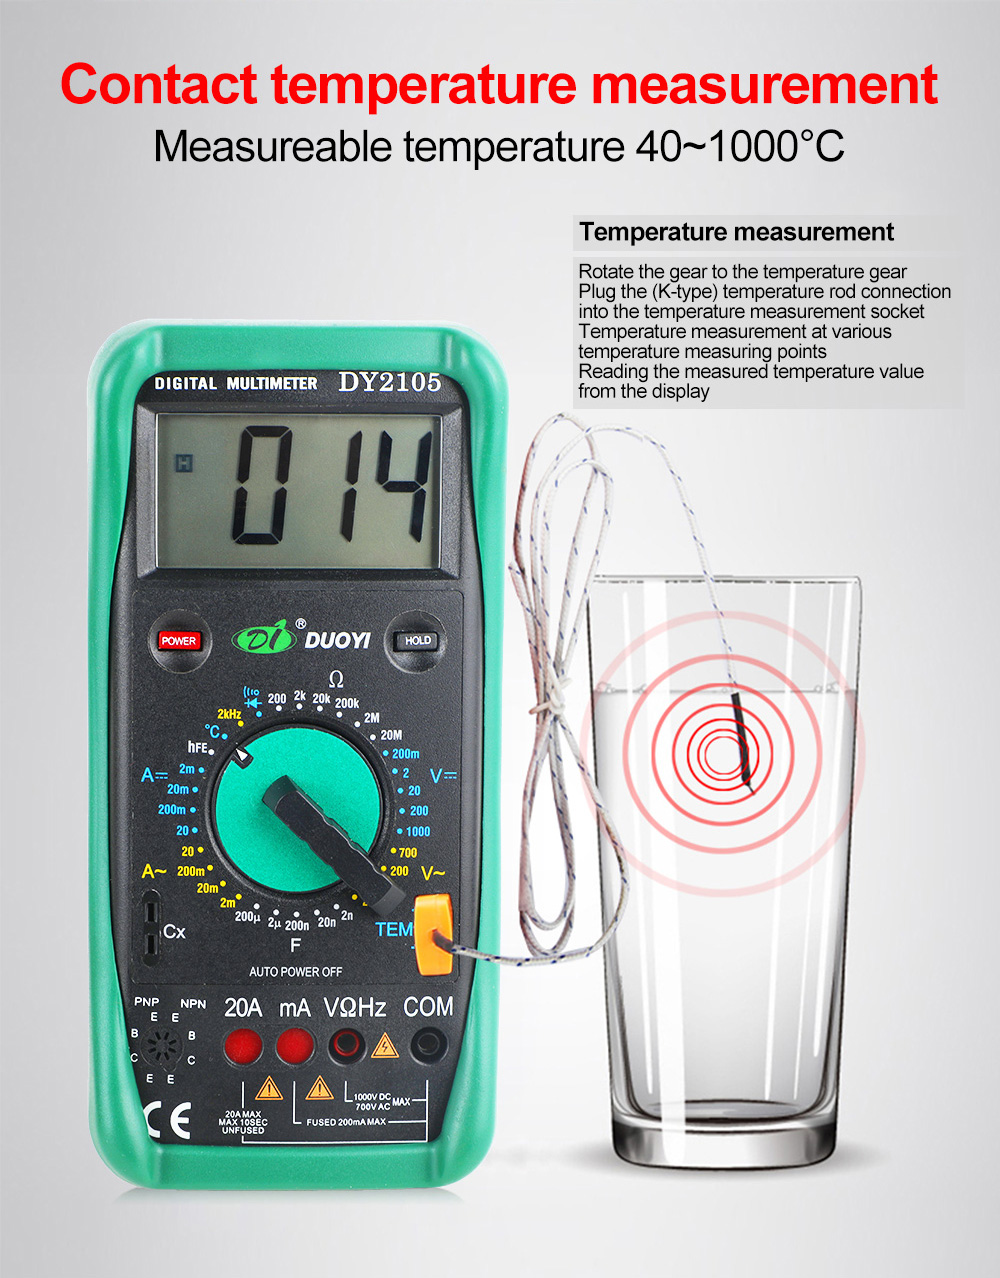 DUOYI DY2105 Multifunction Digital Multimeter Multimetro Transistor Capacitor Temperature And Frequency Measurement